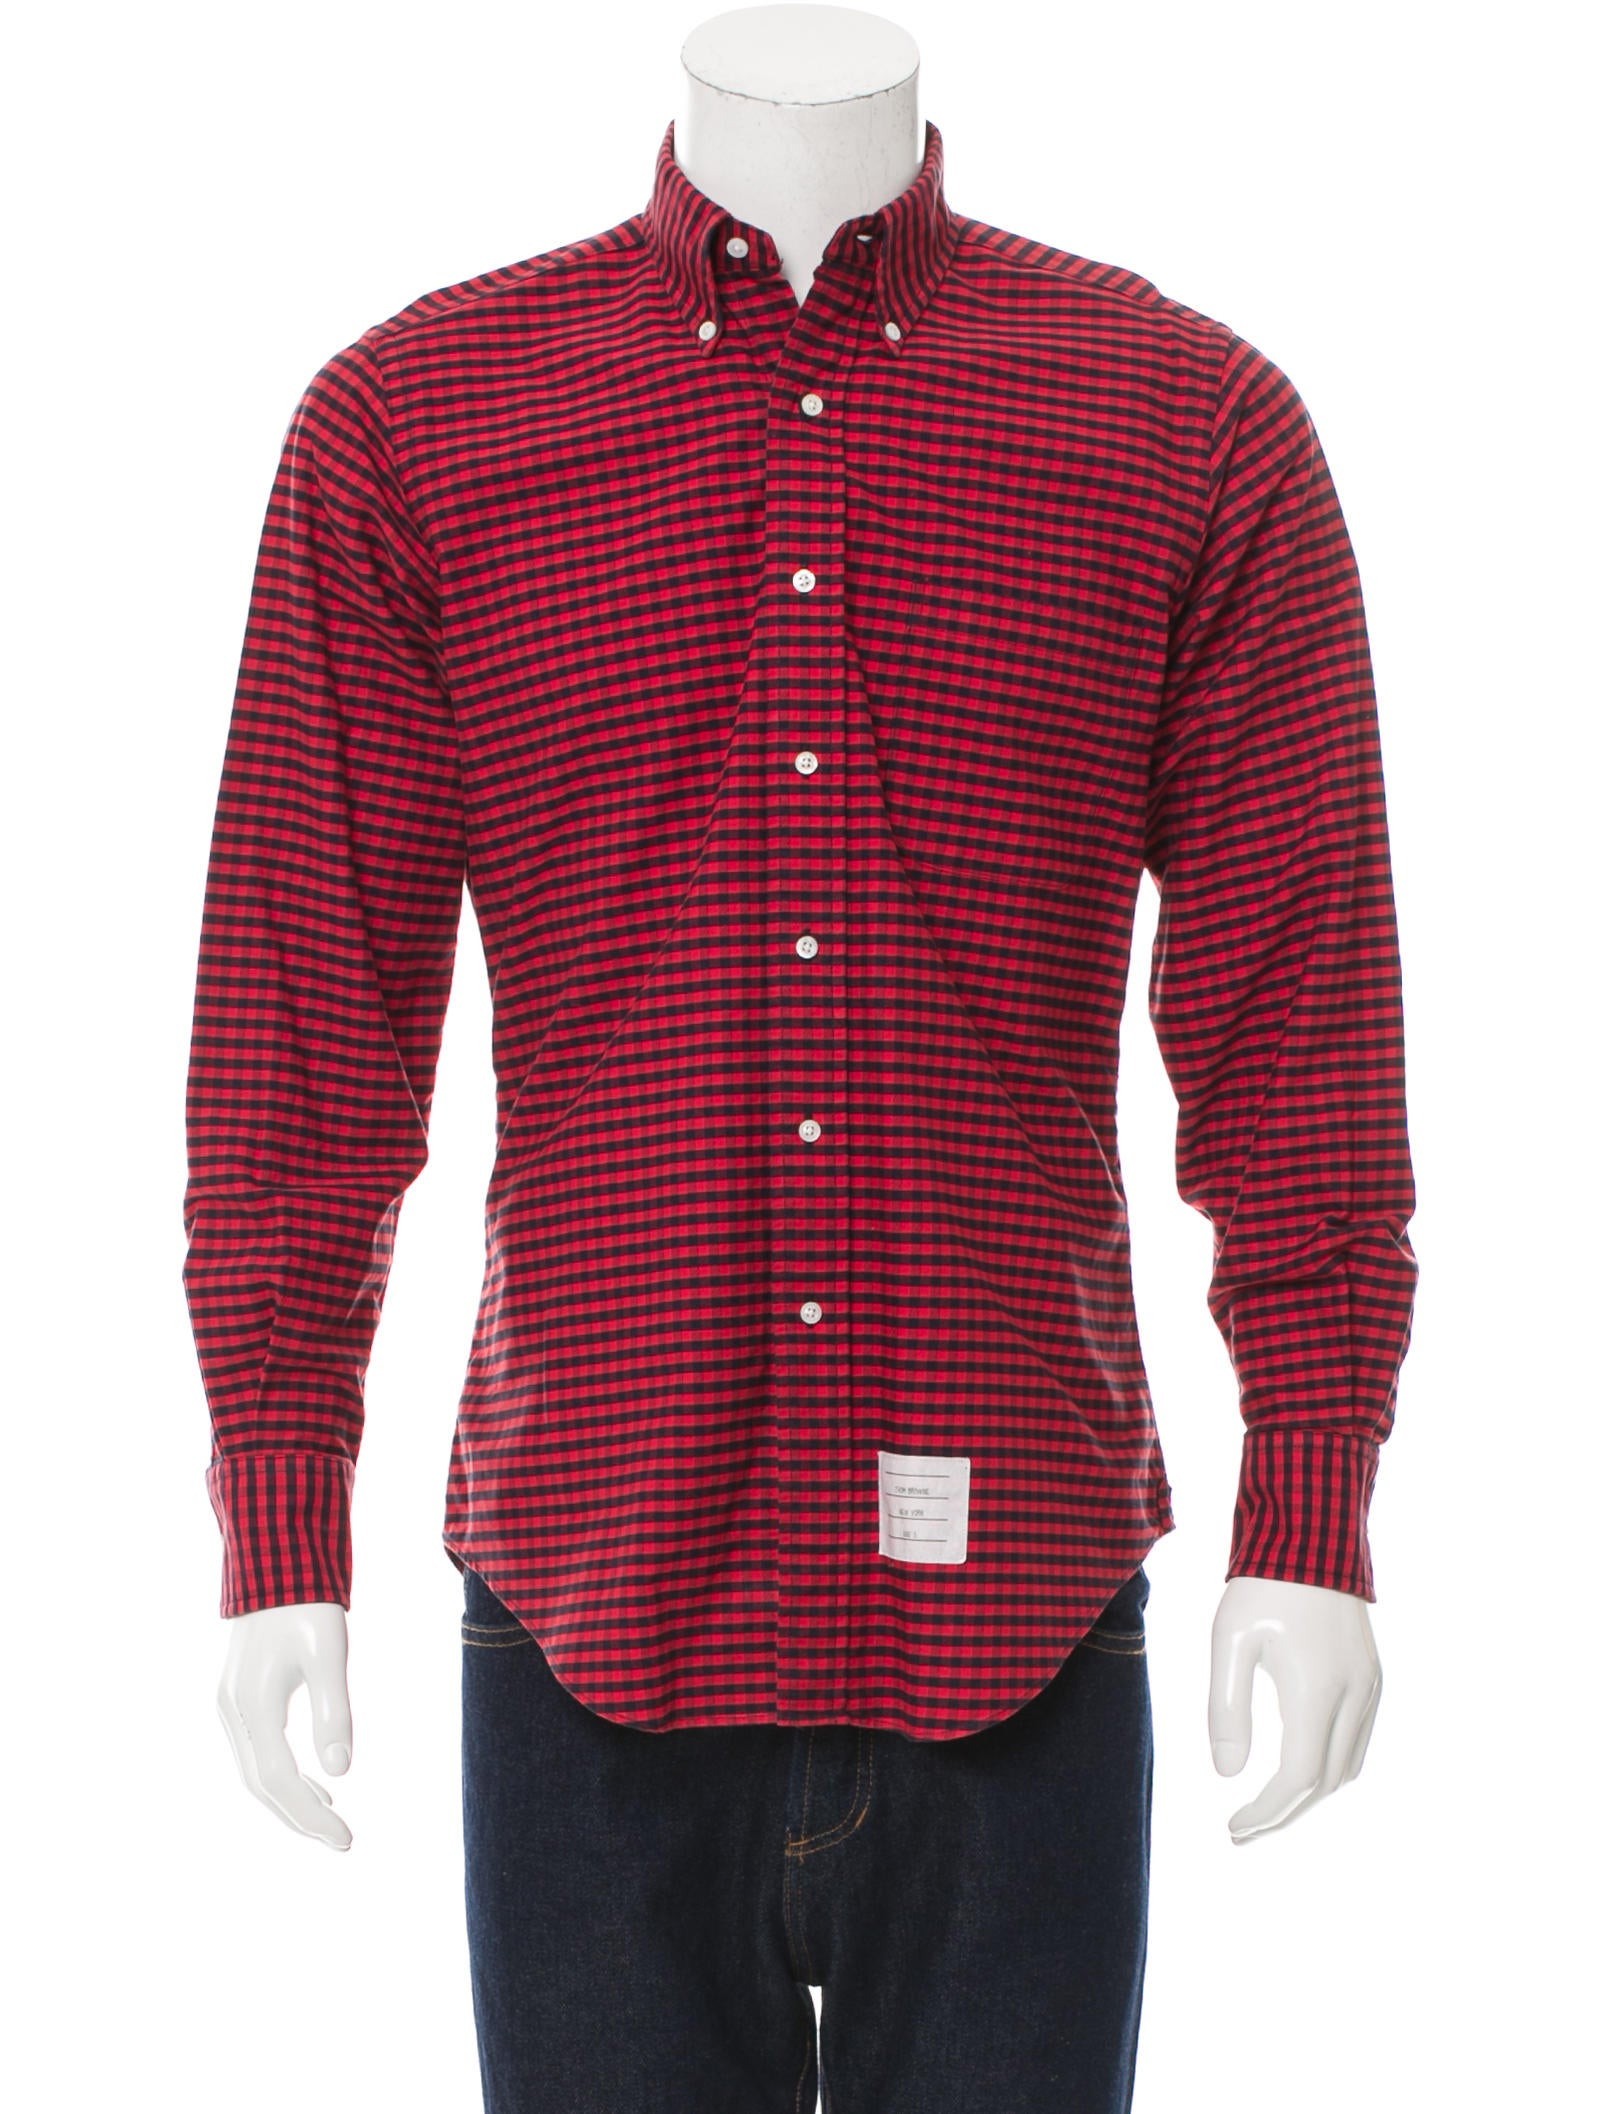 Thom browne gingham button up shirt clothing tho21789 for Thom browne shirt sale